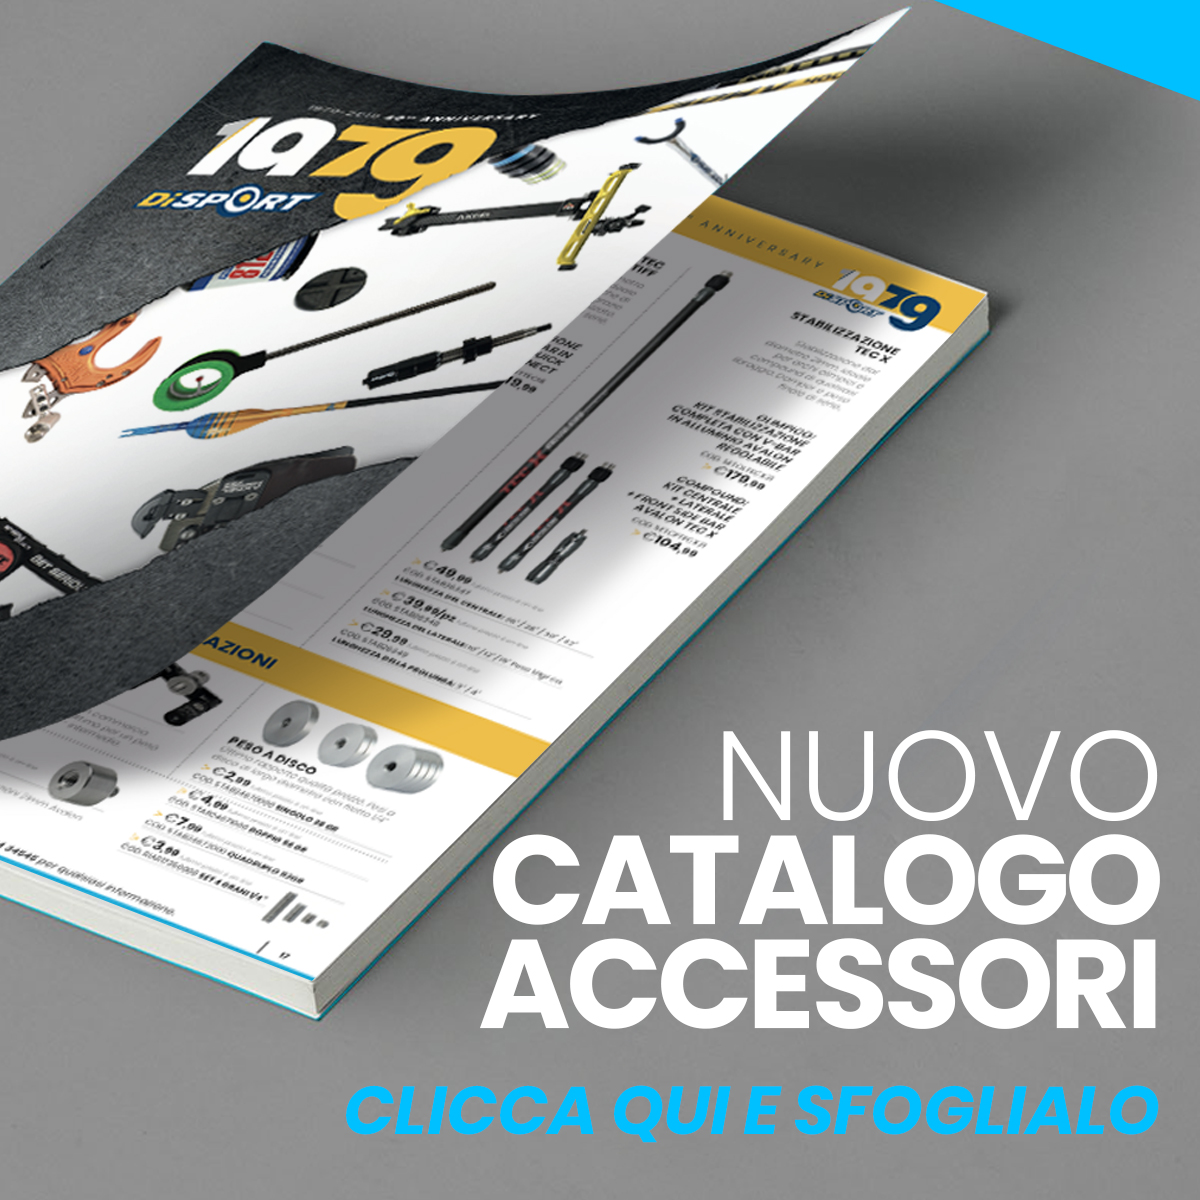 Catalogo Accessori Disport 2020